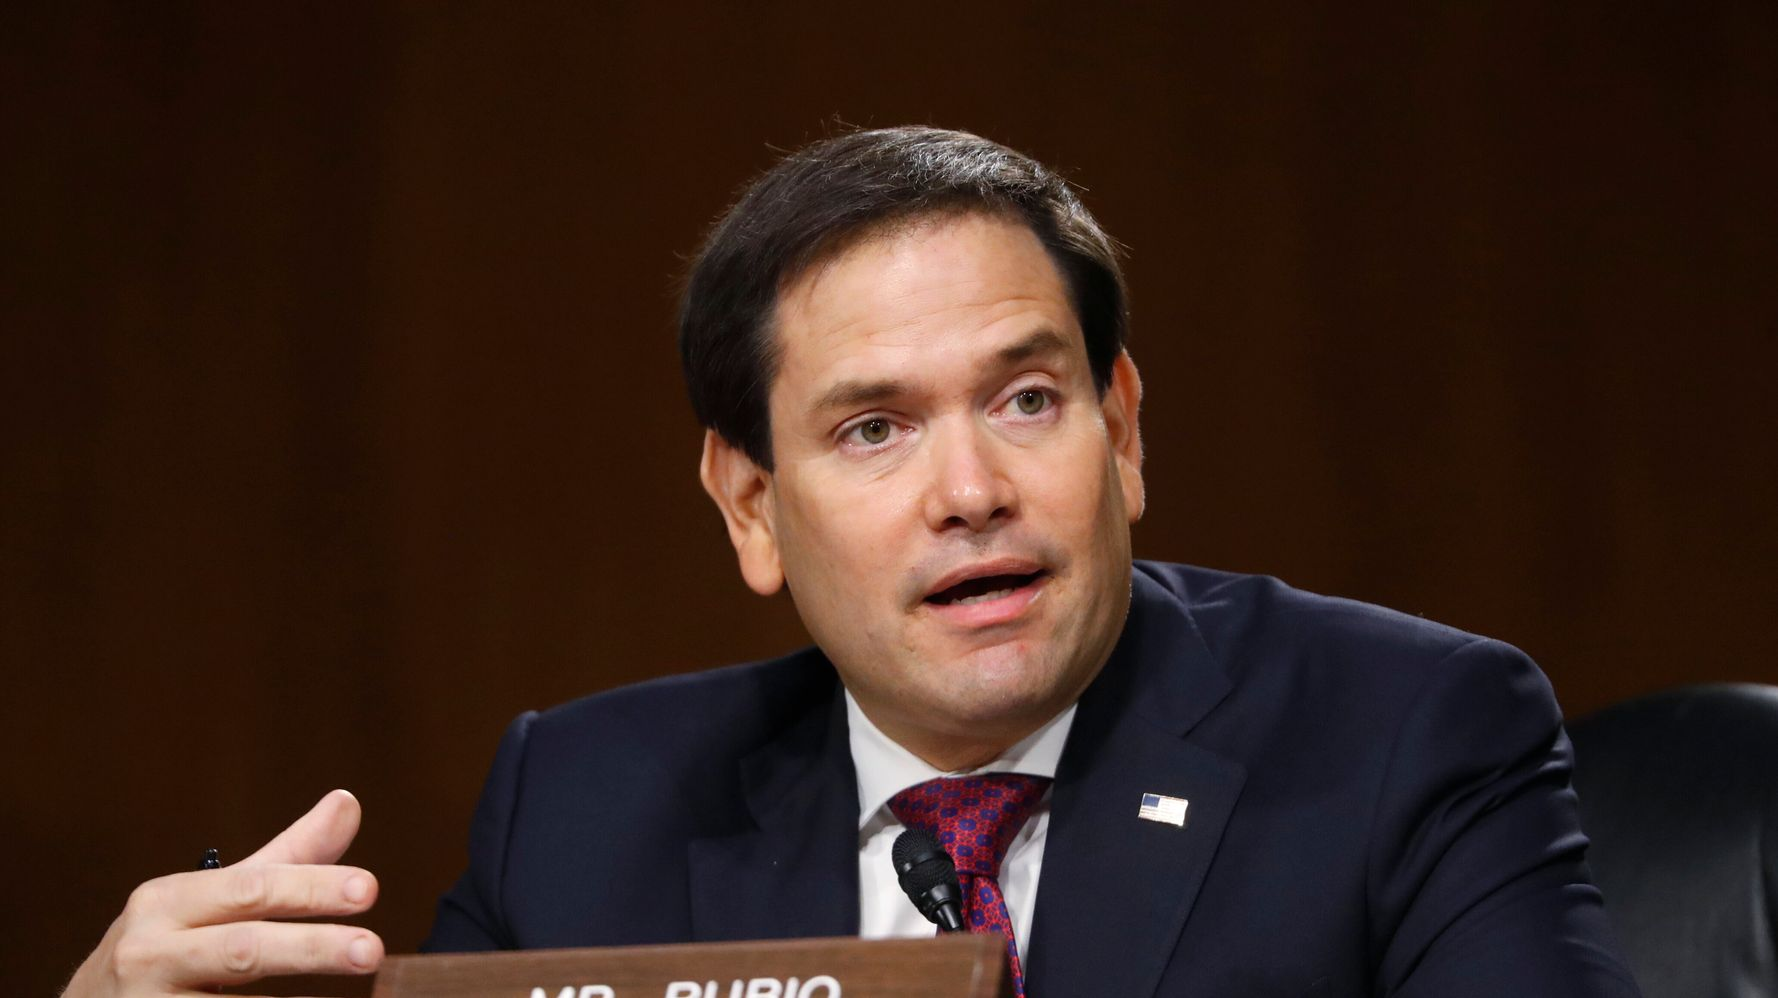 Marco Rubio Makes A Very Poor GIF Choice To Predict How Florida Will Vote